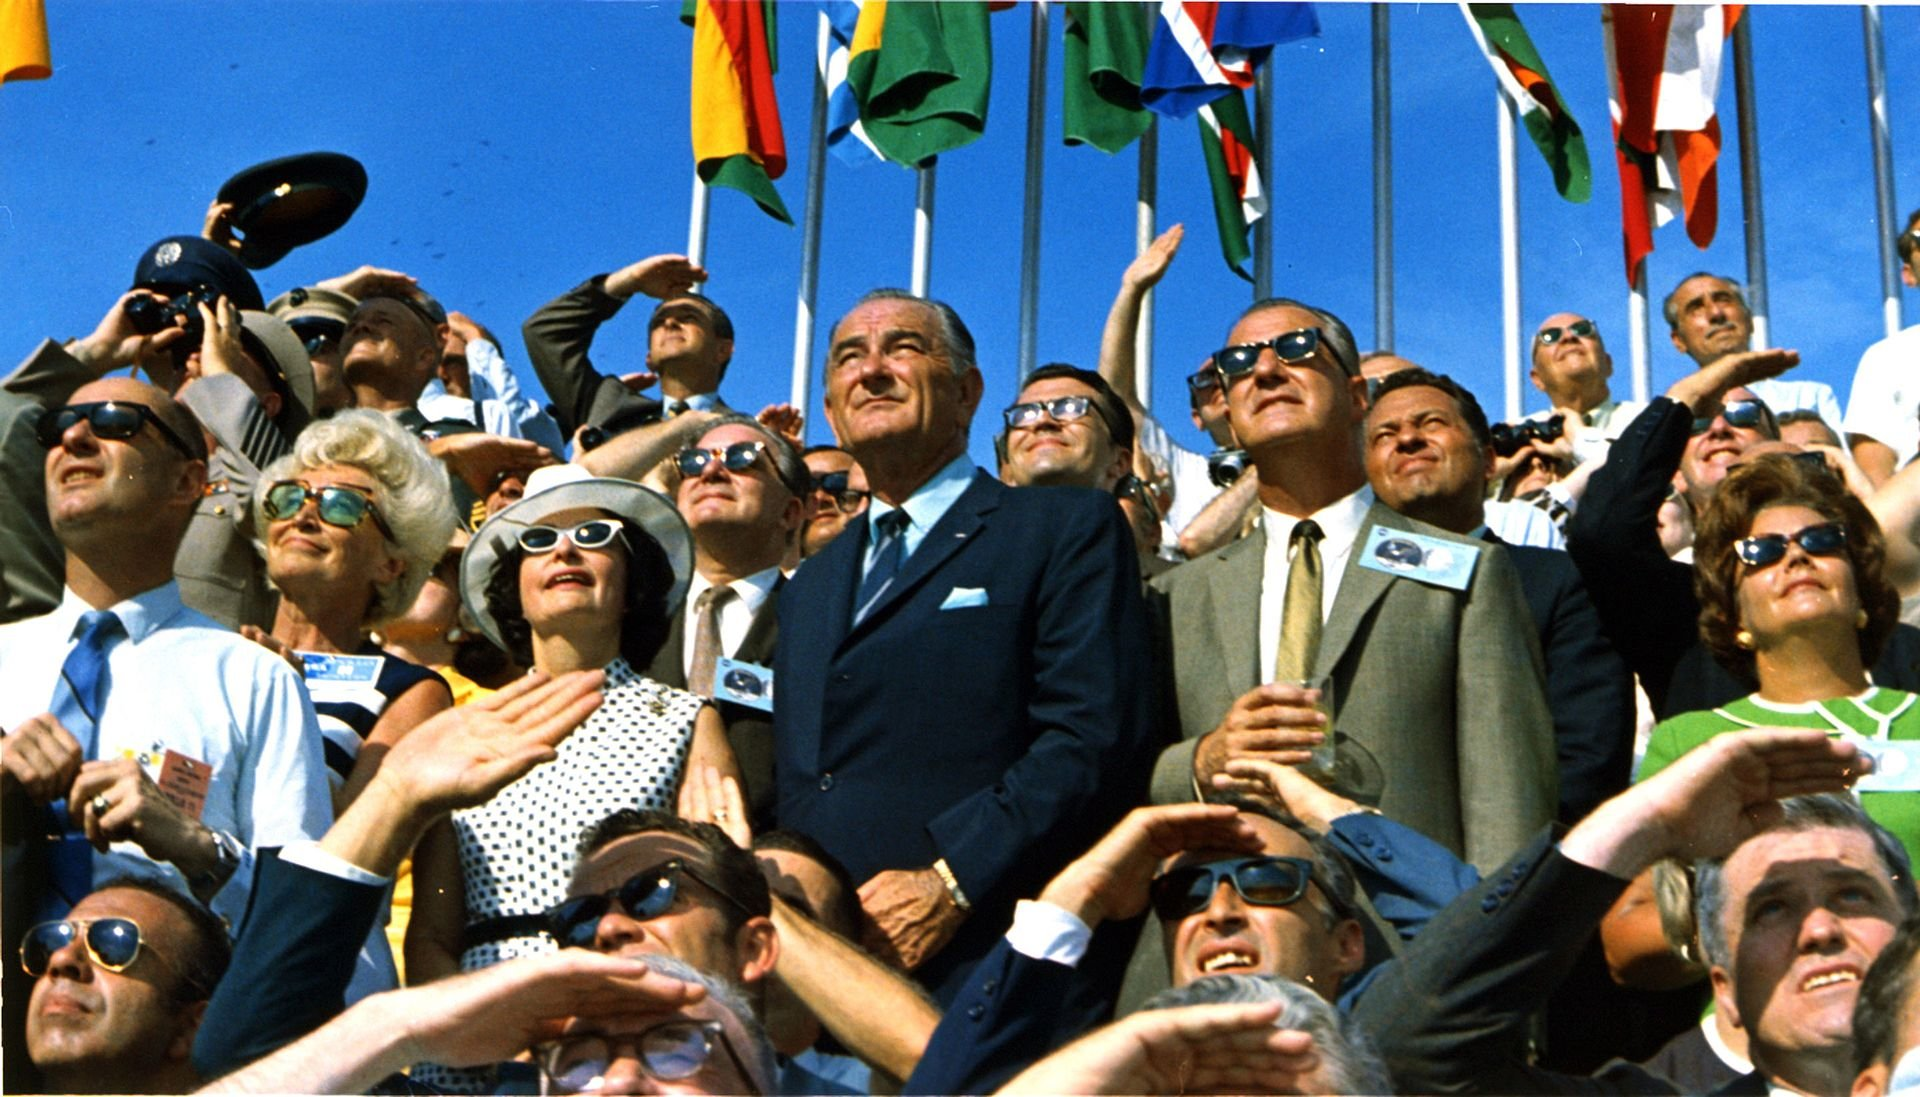 Former President Lyndon B. Johnson and Vice President Spiro Agnew observe the Apollo 11 liftoff at the Kennedy Space Center on July 16, 1969. Courtesy of NASA.